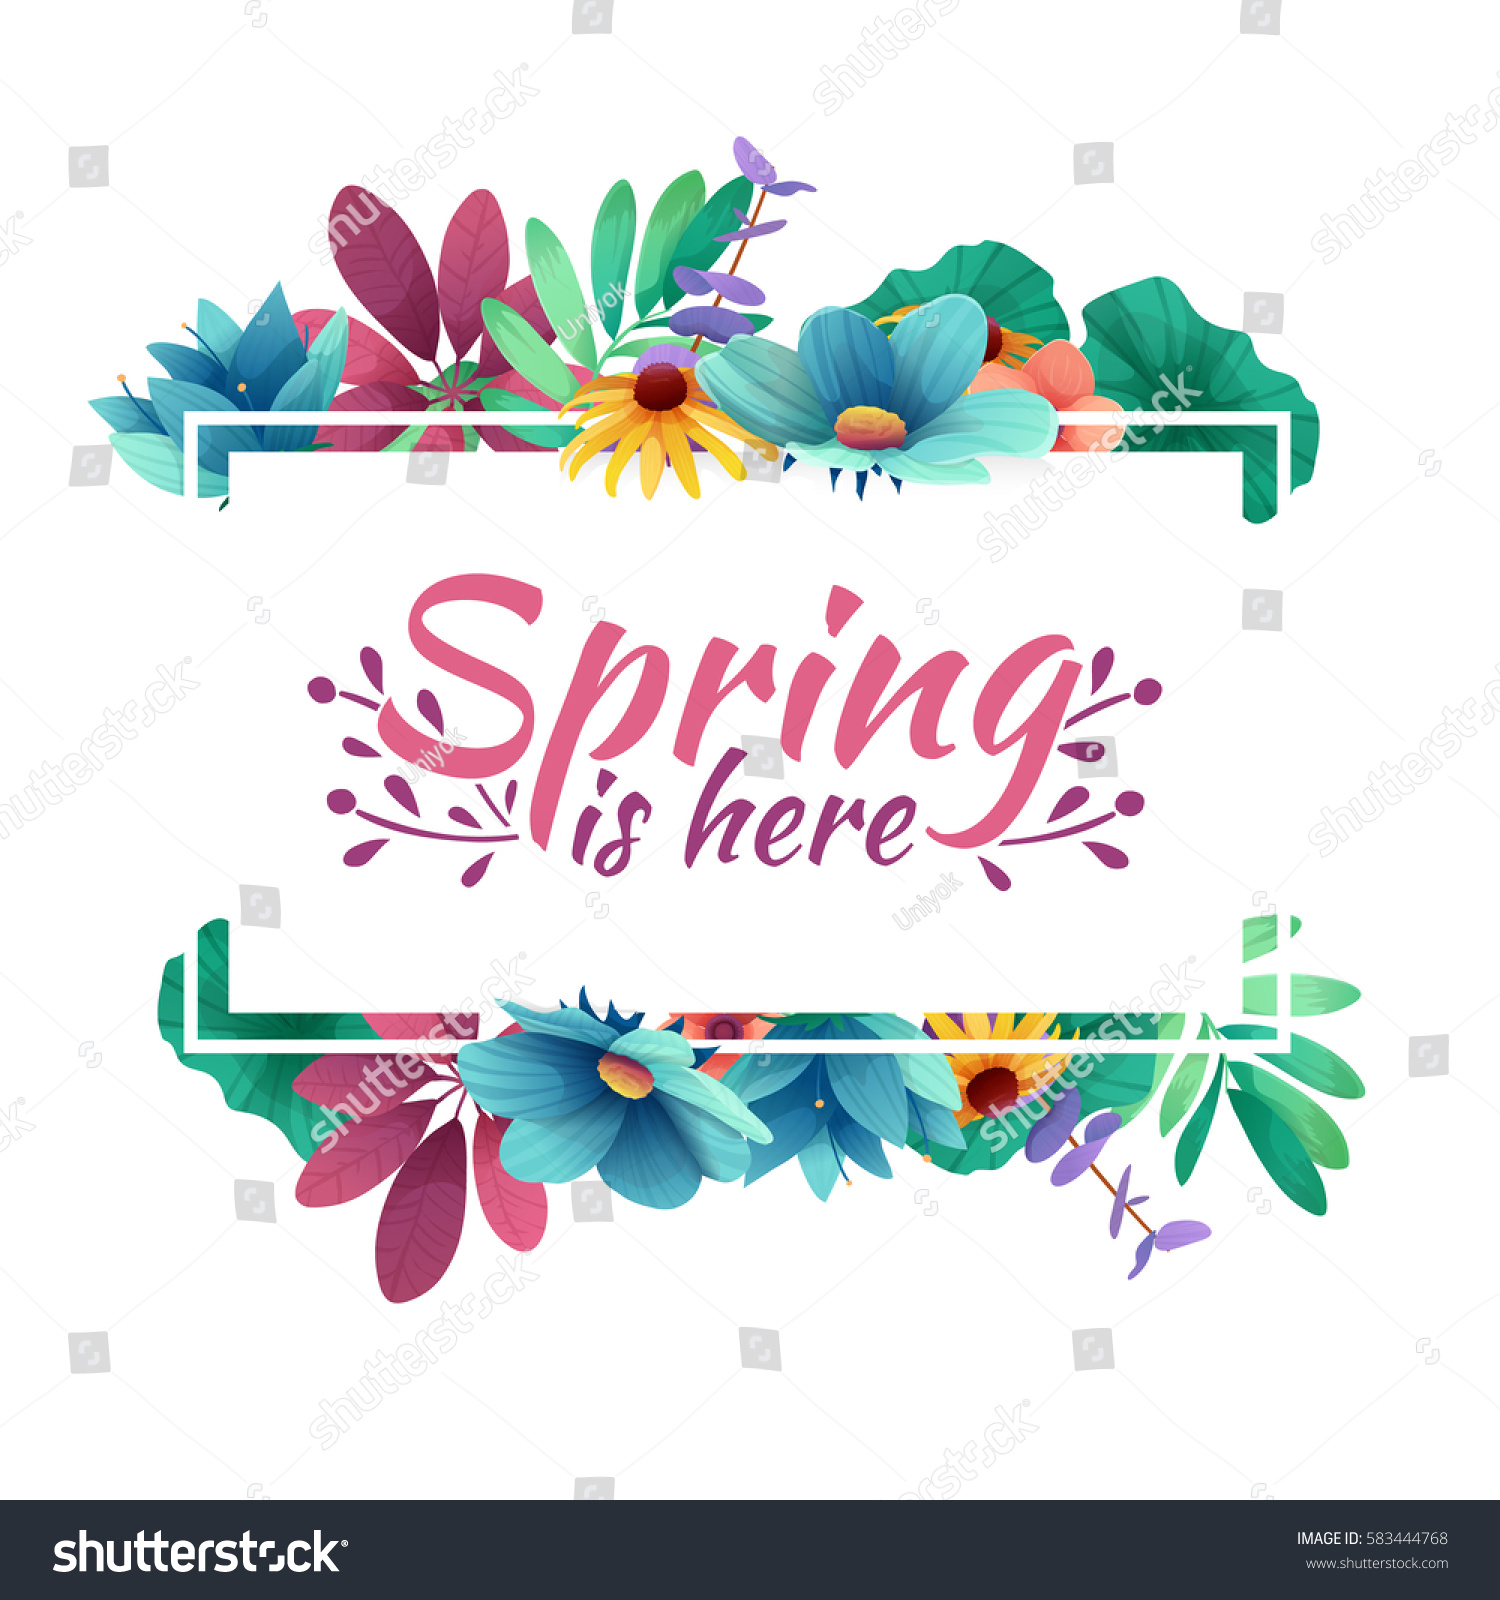 Design banner with  spring is here logo. Card for spring season with white frame and herb. Promotion offer with spring plants, leaves and flowers decoration.  Vector #583444768